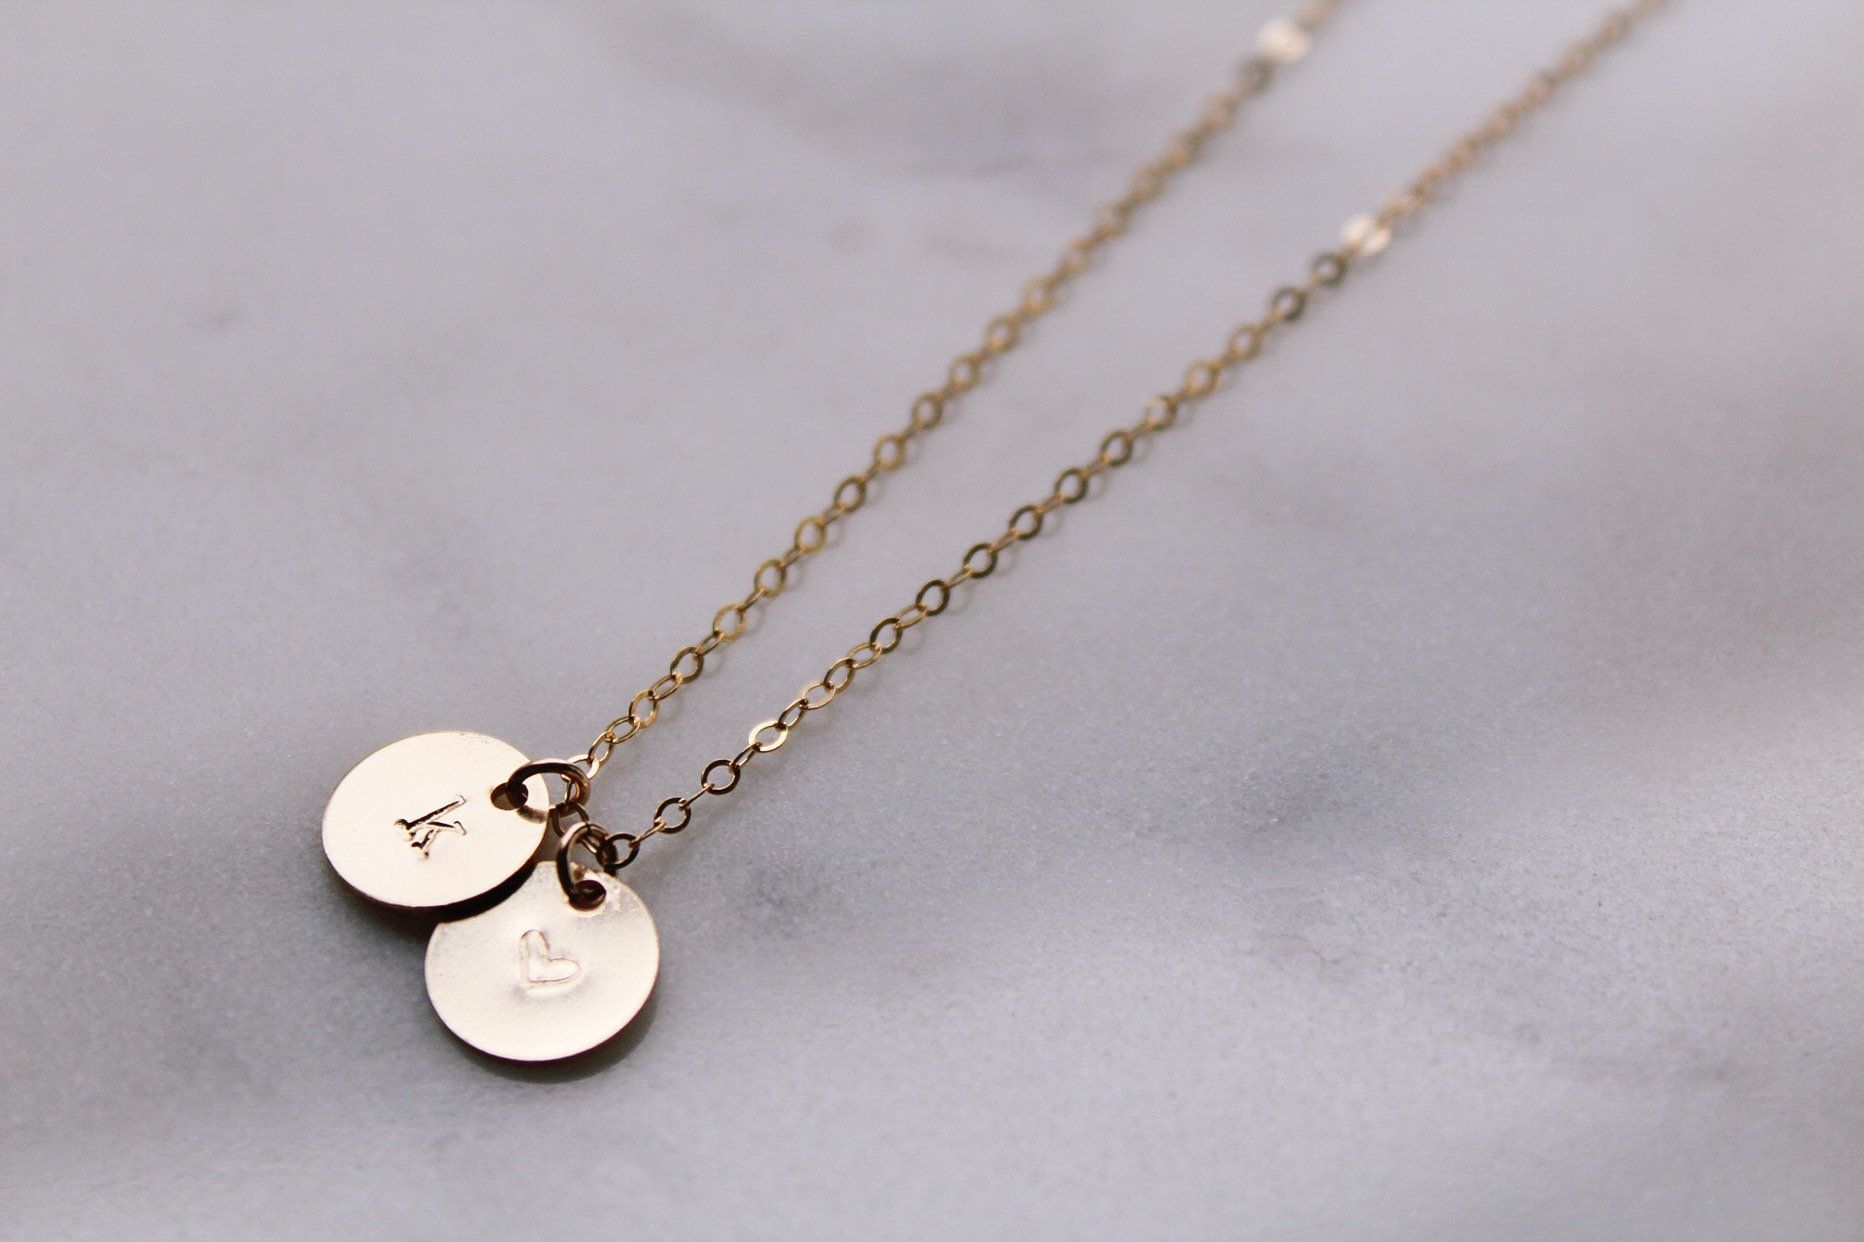 Gold Double Initial Disc Necklace 2 Disc Initial Charm Etsy Initial Necklace Gold Initial Necklace Gold Circles Initial Necklace